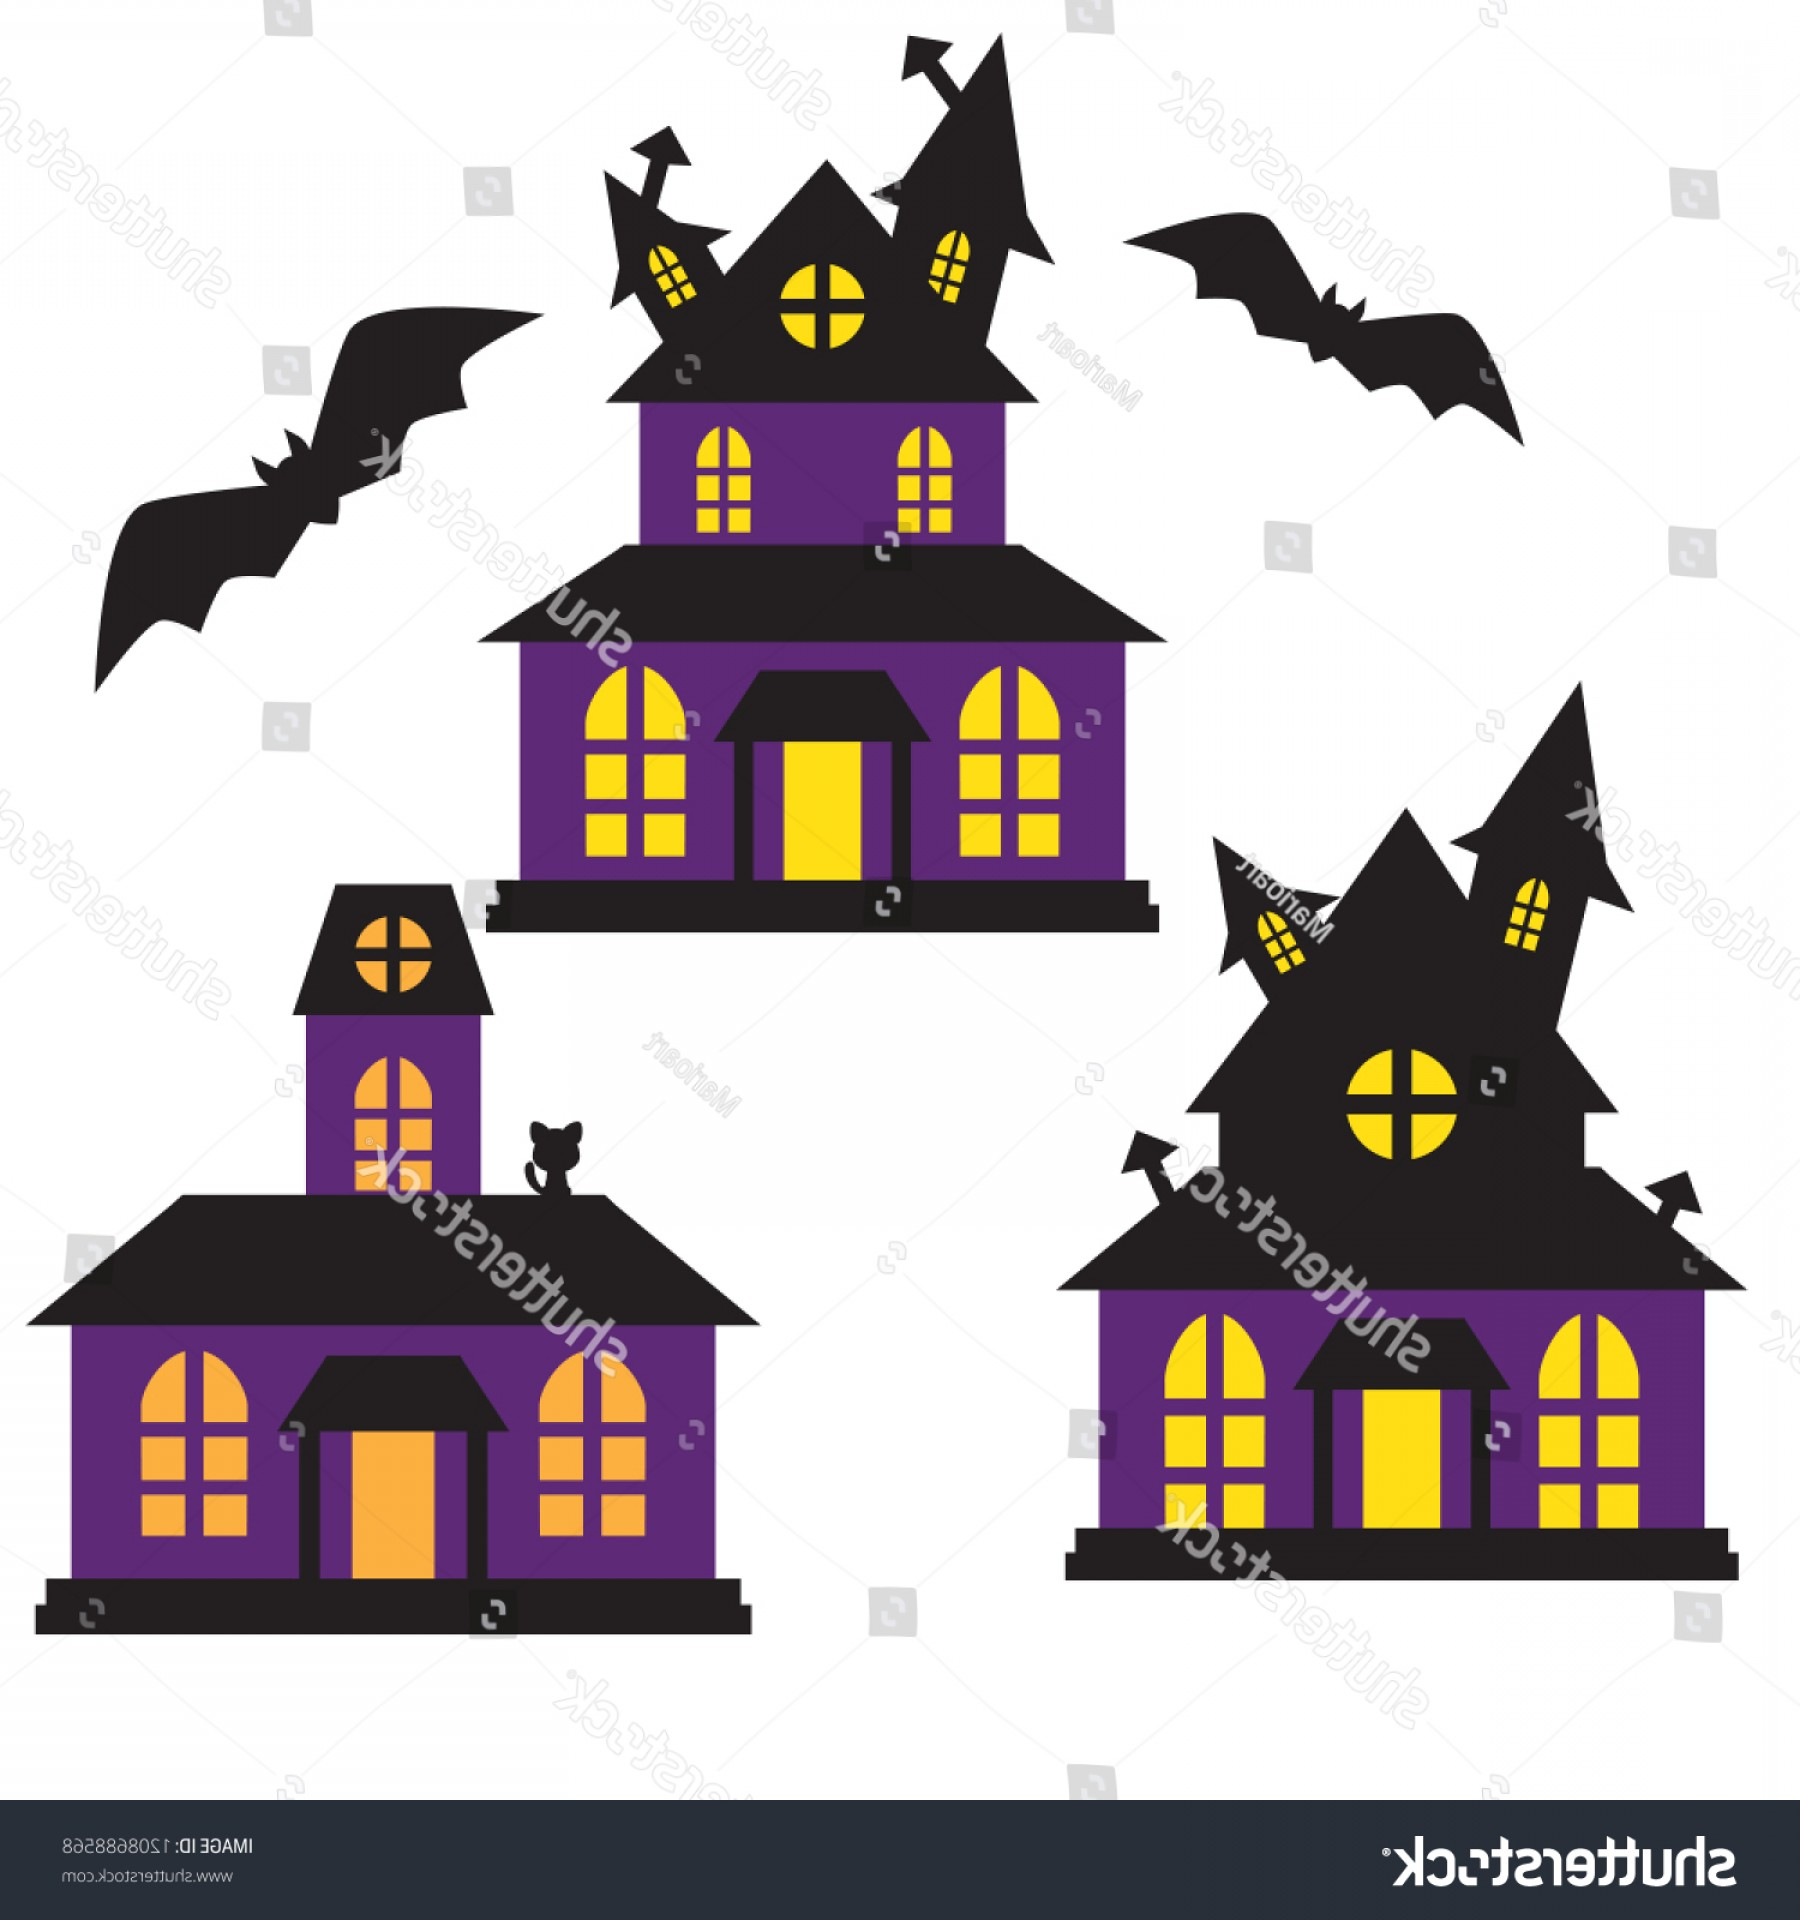 House Clip Art Vector: Haunted Houses Vector Illustration Clip Art